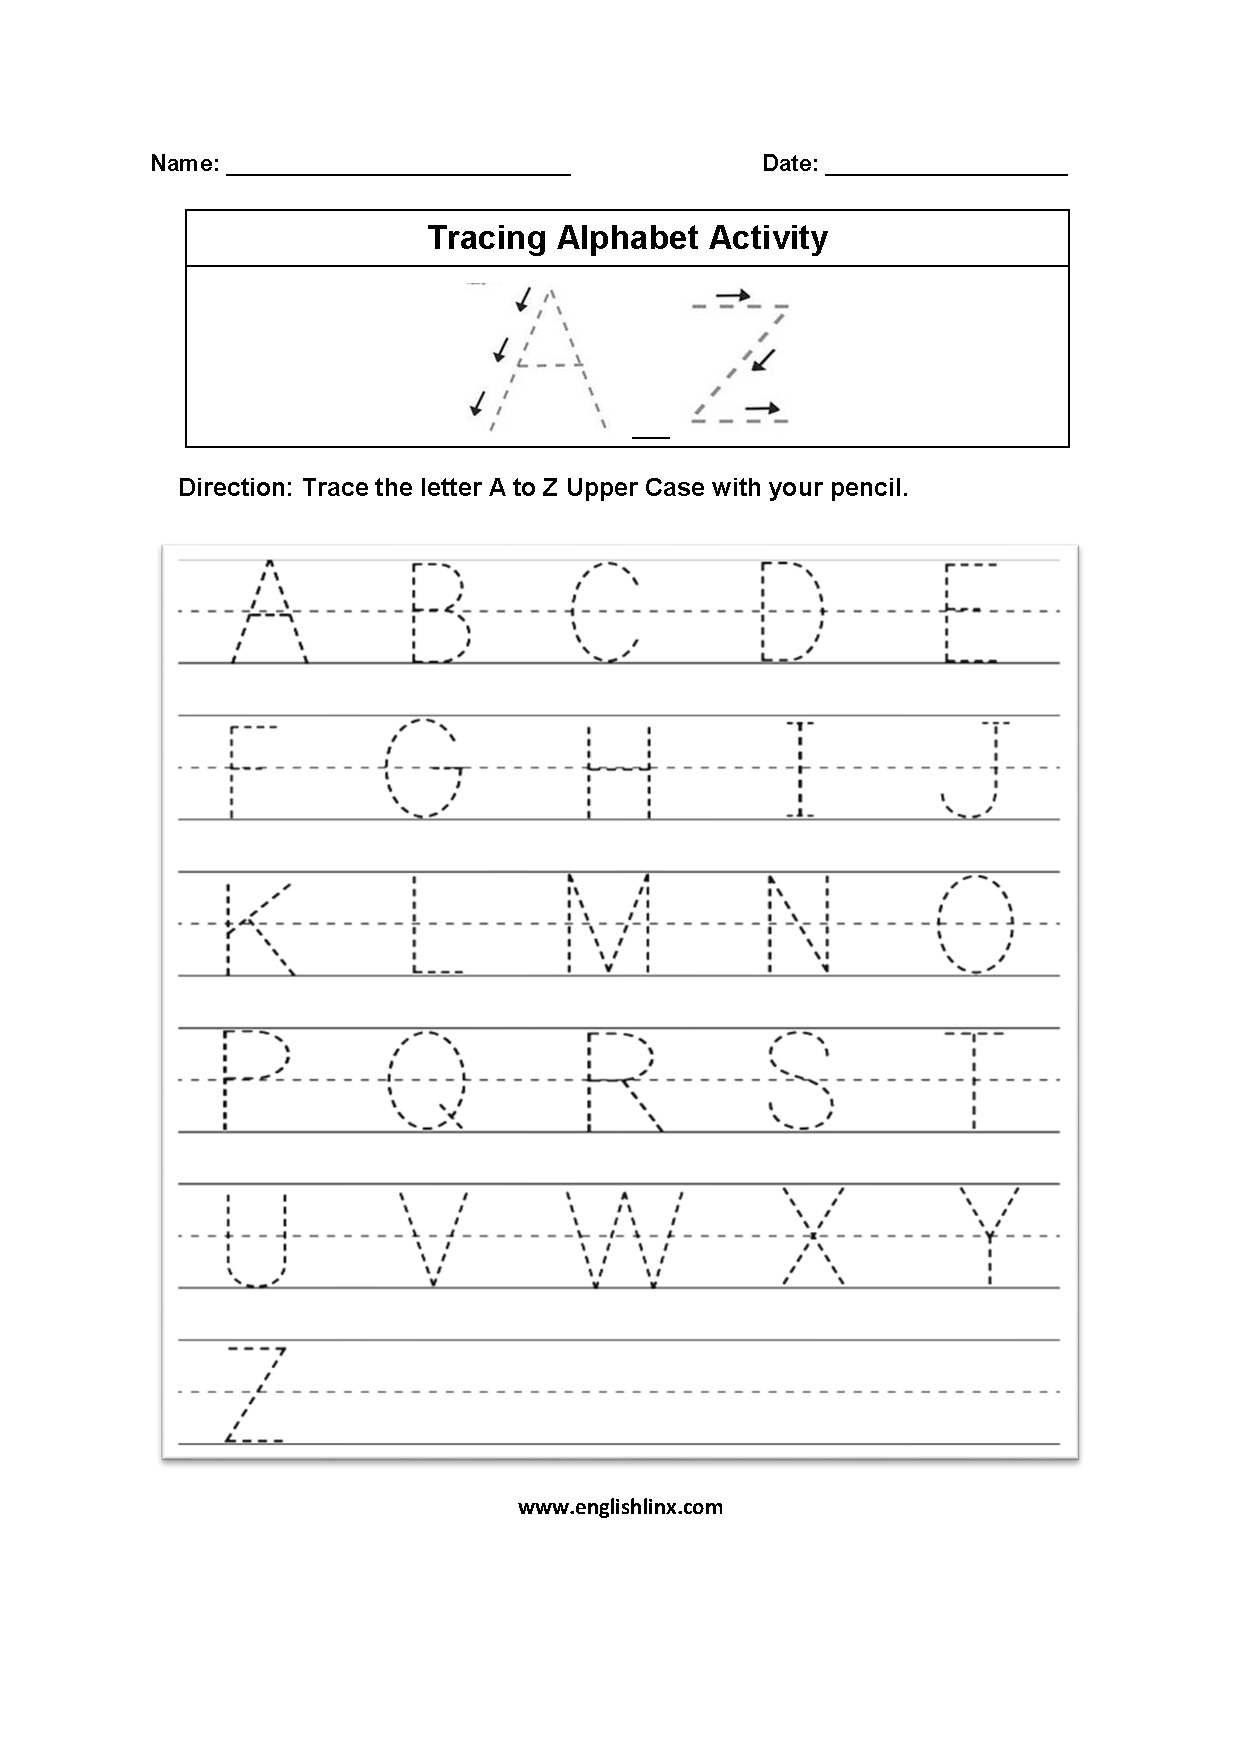 Worksheets Writing Alphabet Worksheets englishlinx com alphabet worksheets tracing worksheets